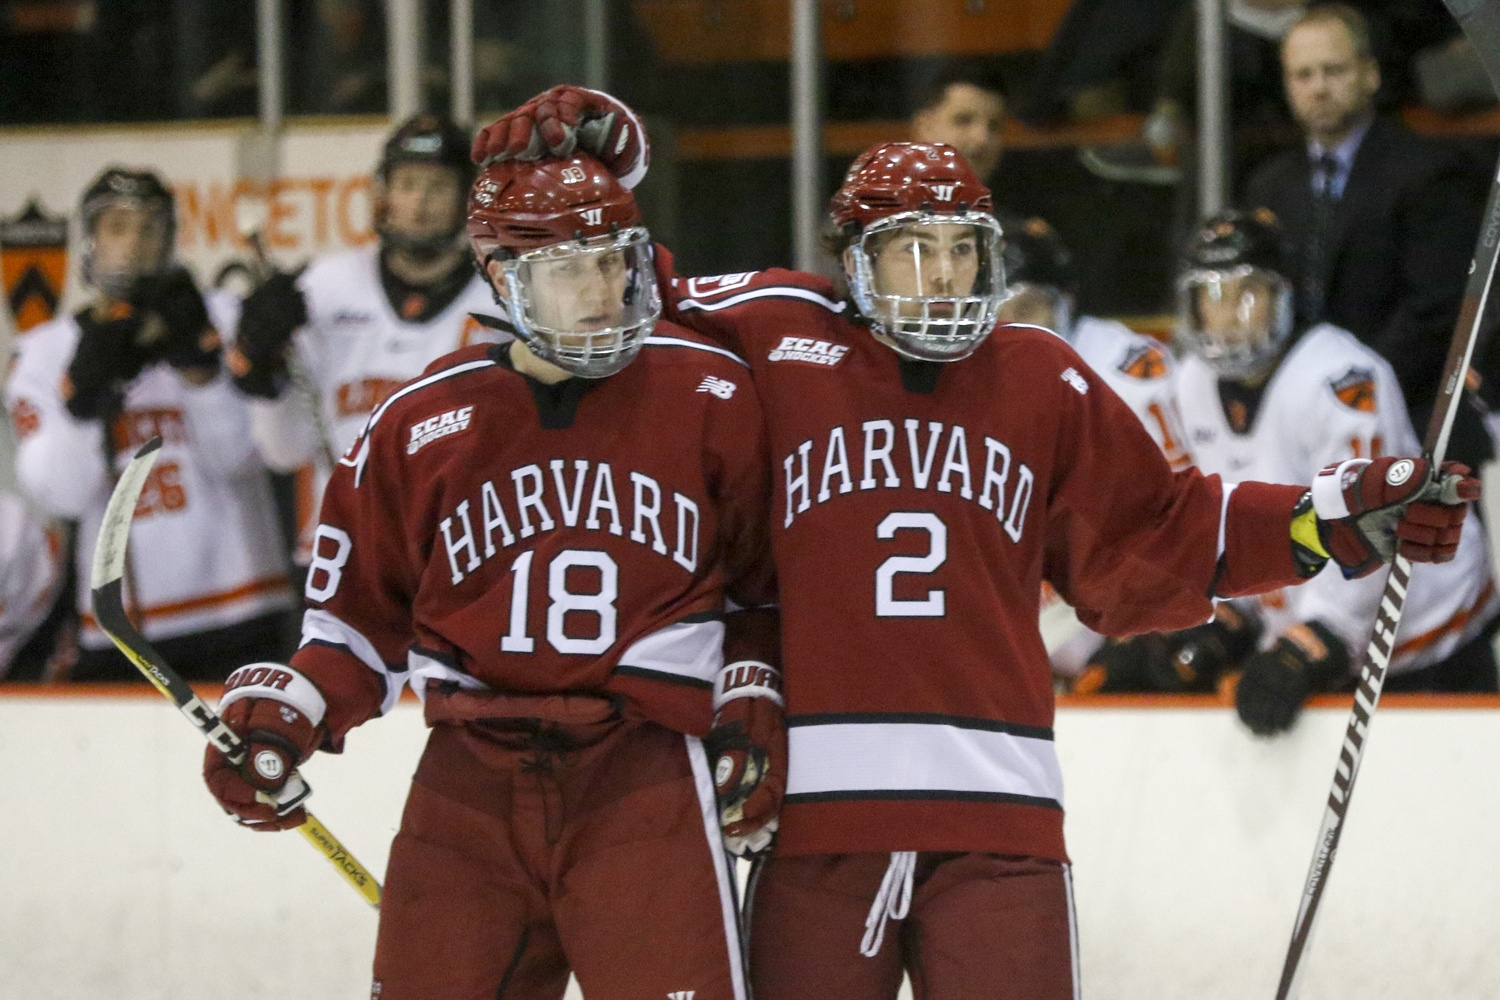 Both sophomore Adam Fox and freshman Reilly Walsh, pictured here against Princeton, potted goals in a 5-0 victory over St. Lawrence.